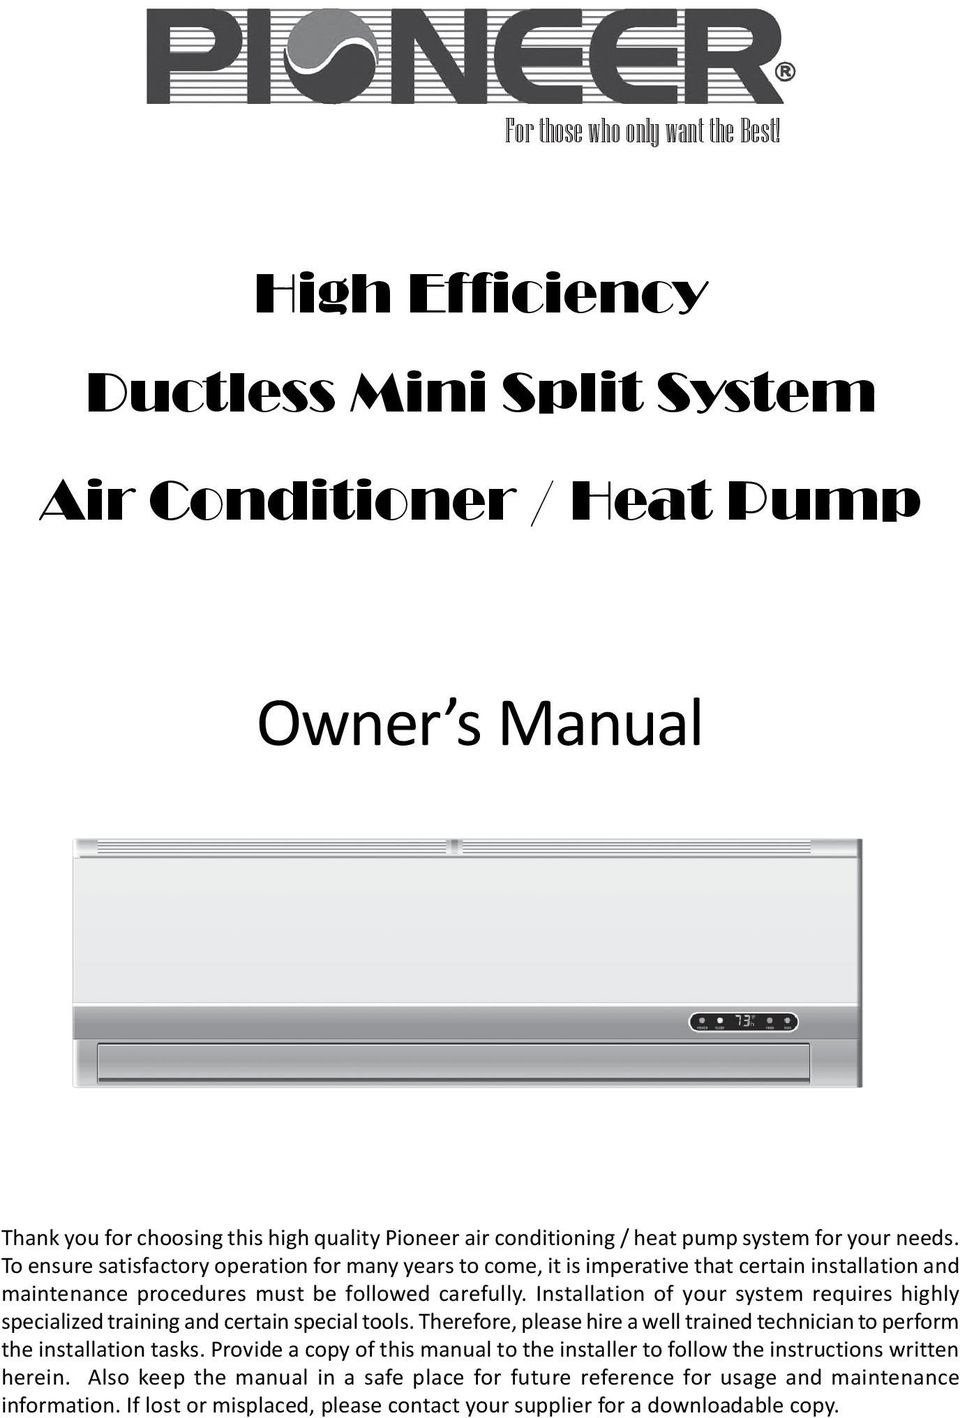 Owner S Manual High Efficiency Ductless Mini Split System Air Con Wiring Diagram To Ensure Satisfactory Operation For Many Years Come It Is Imperative That Certain Installation